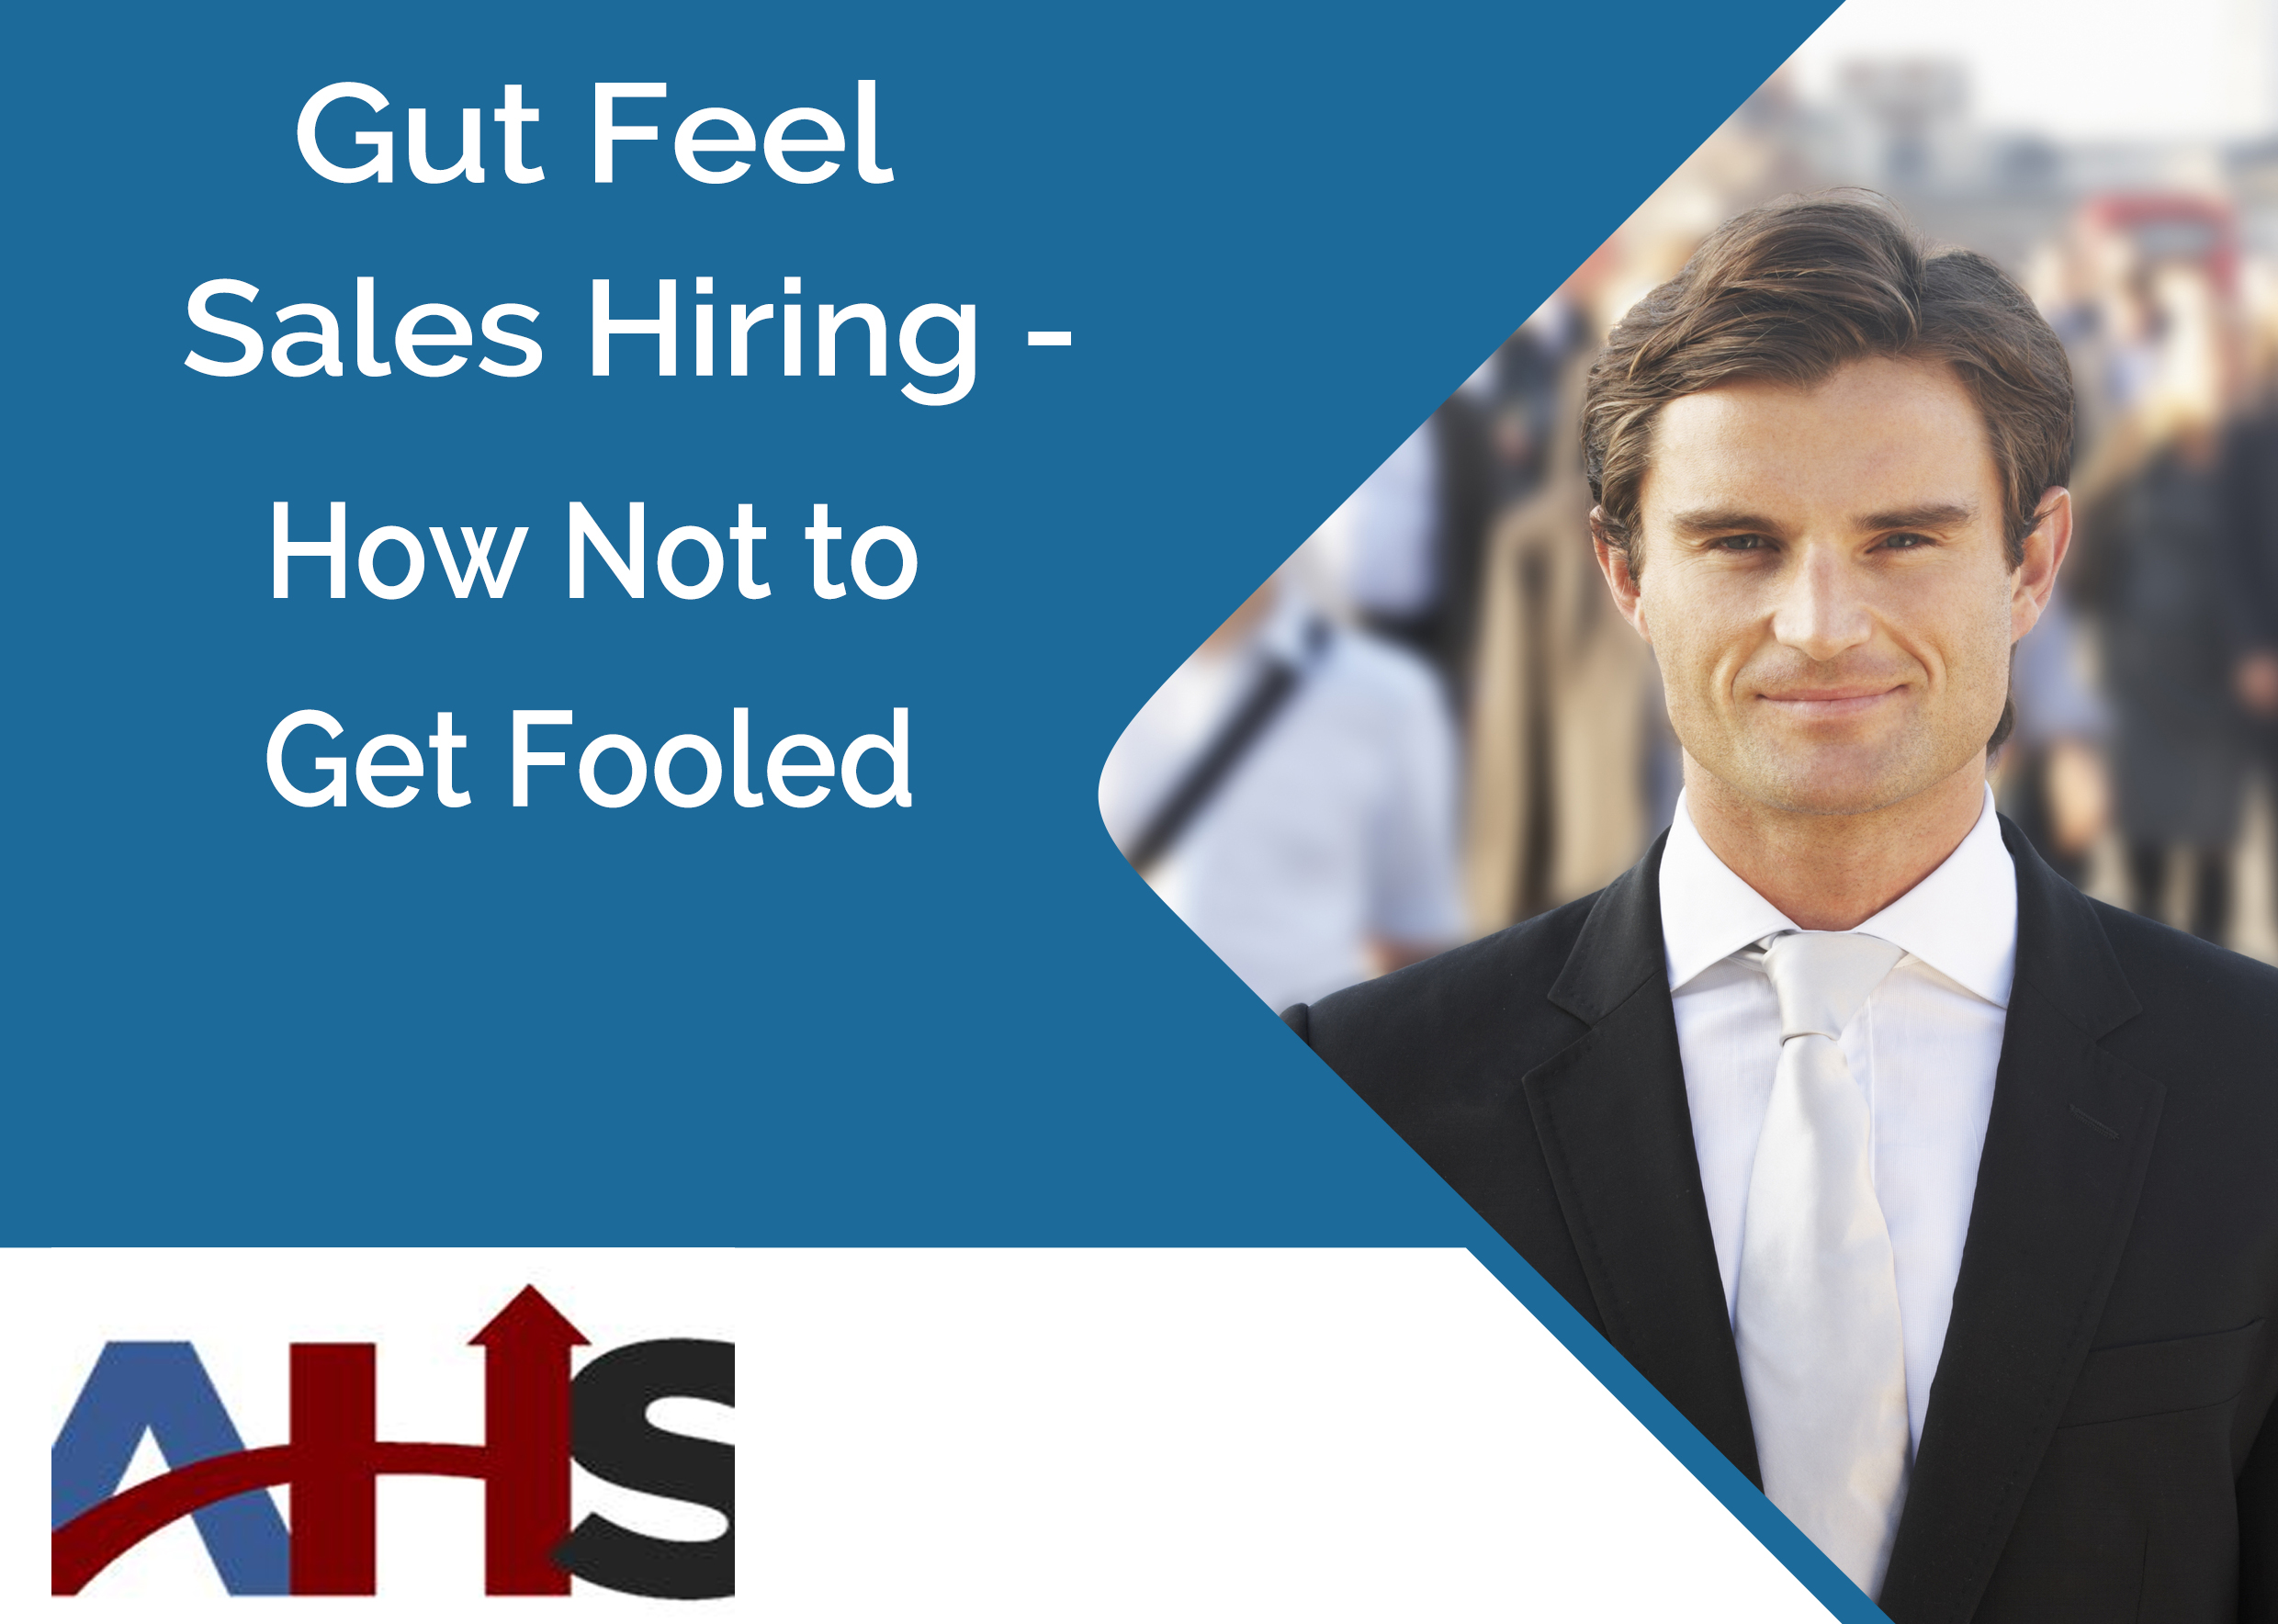 Gut Feel Sales Hiring – How Not to Get Fooled